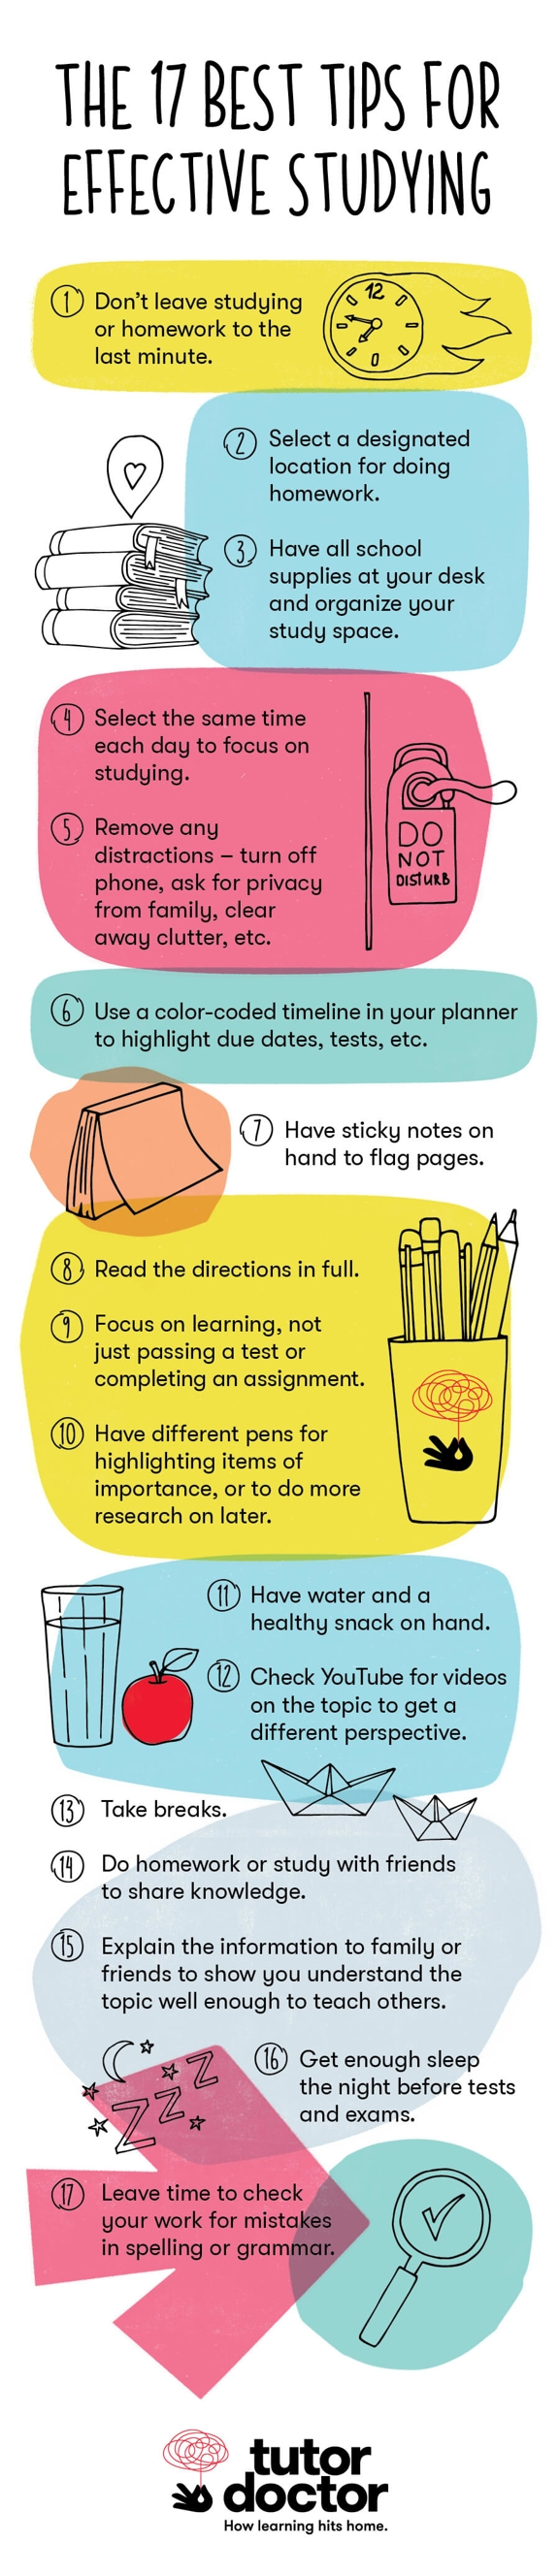 17 Best tips for effective studying from Tutor Doctor